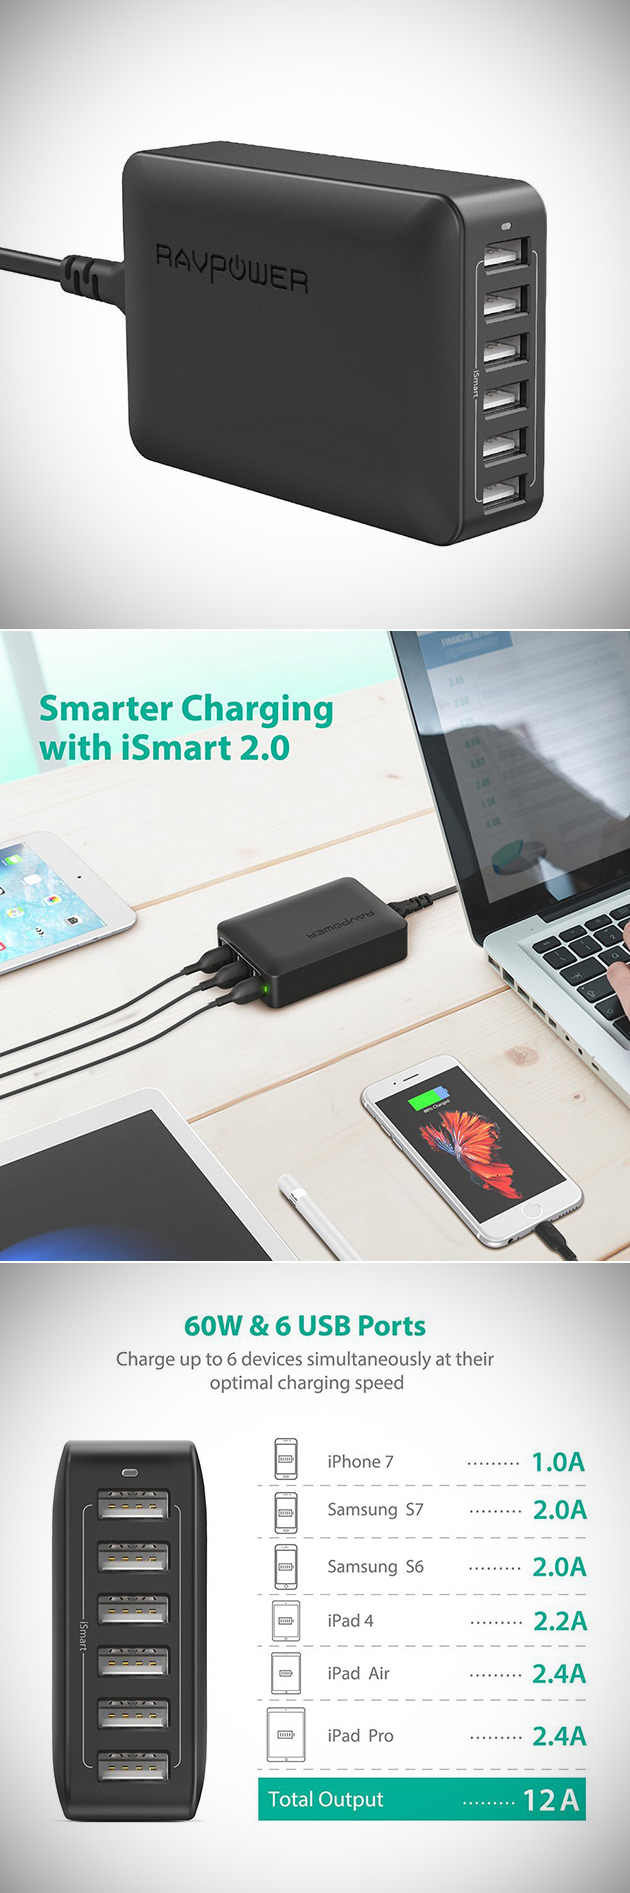 RAVPower 60W 12A USB Charger Can Power 6-Devices at Once, Get One for Under $17 - Today Only